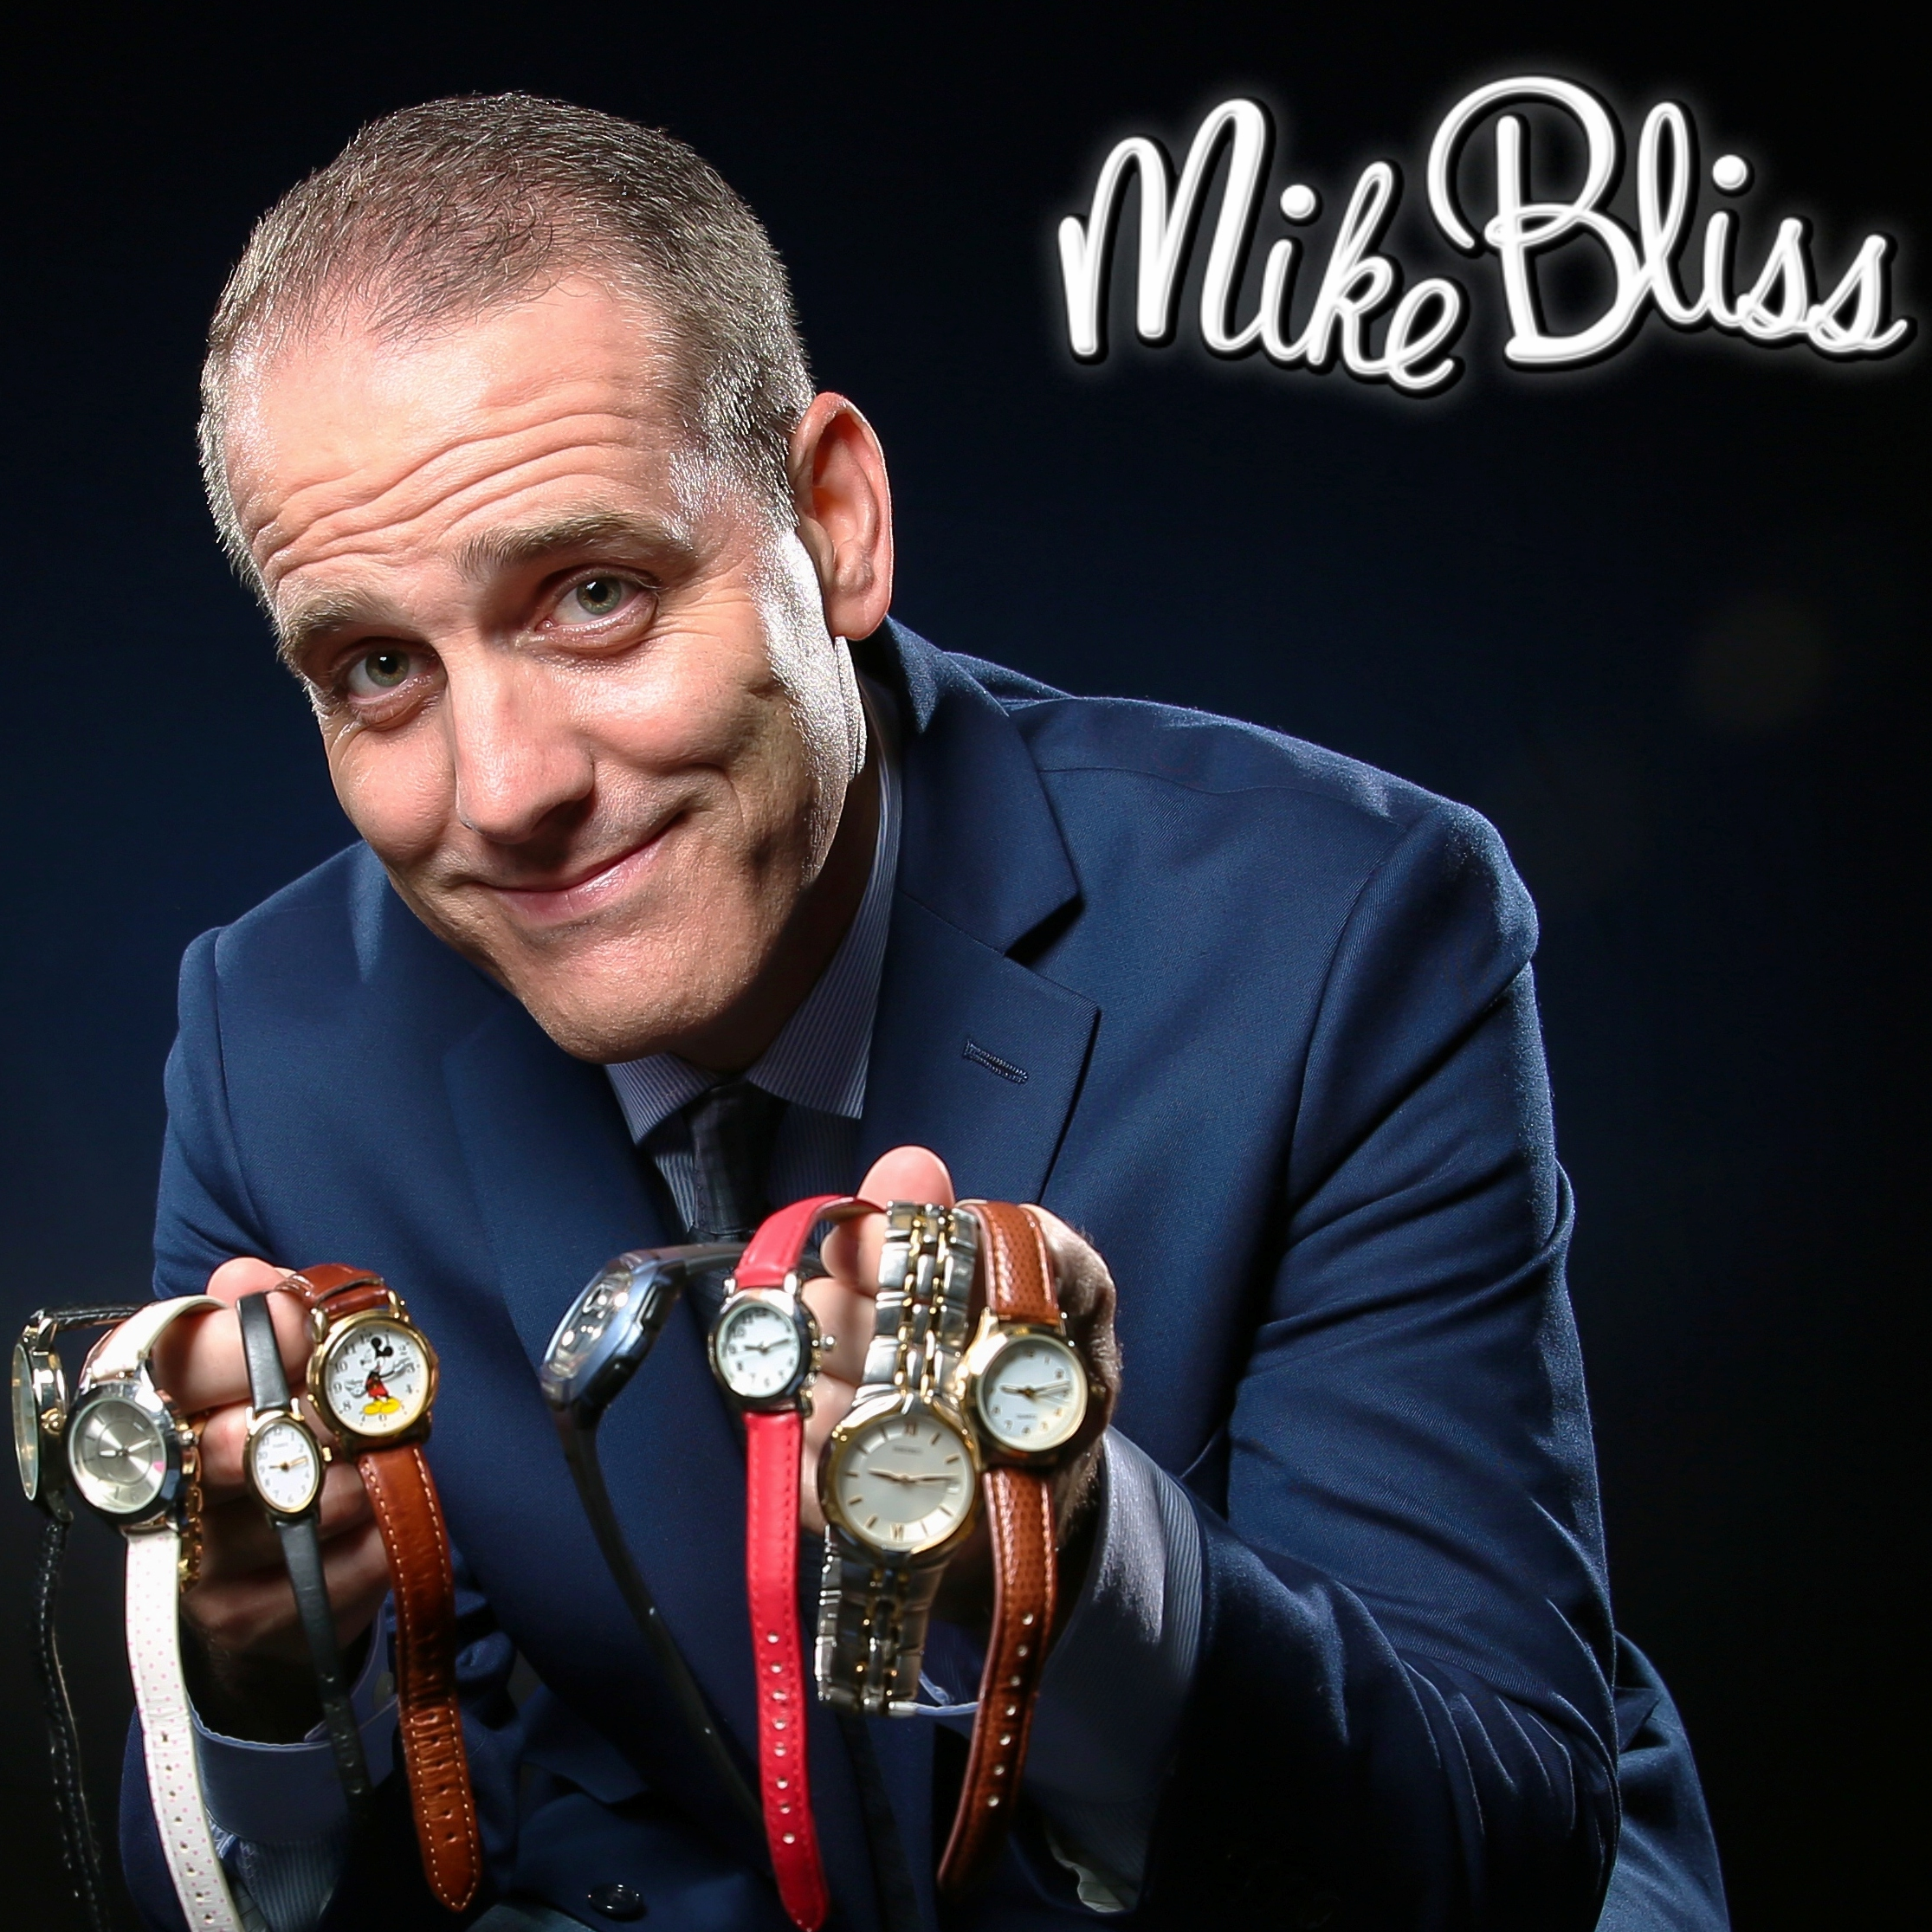 Mike Bliss Comedy